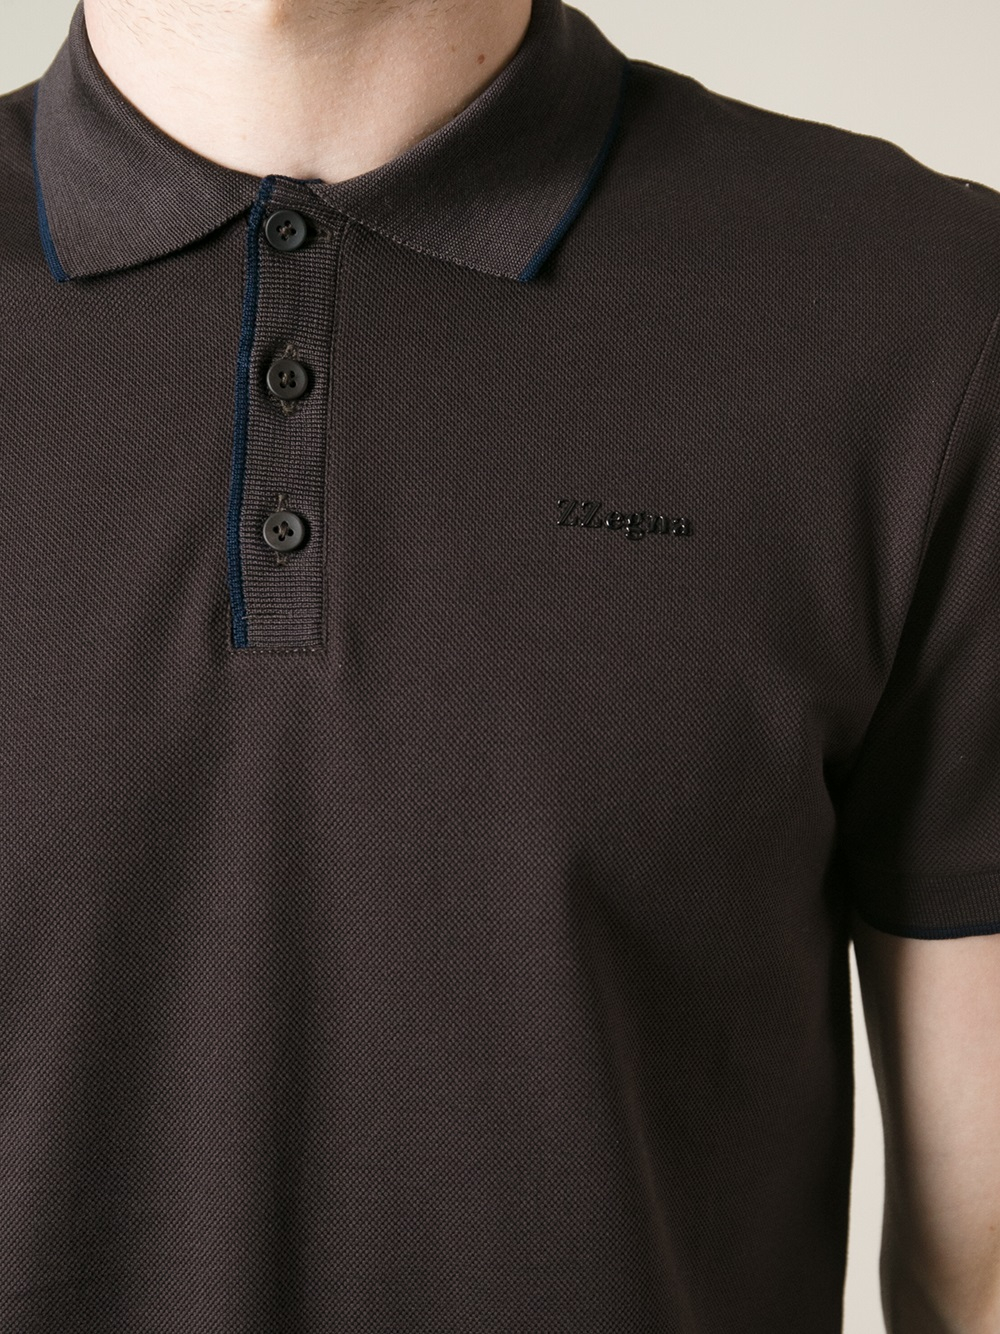 c579588c Z Zegna Short Sleeve Polo Shirt in Brown for Men - Lyst